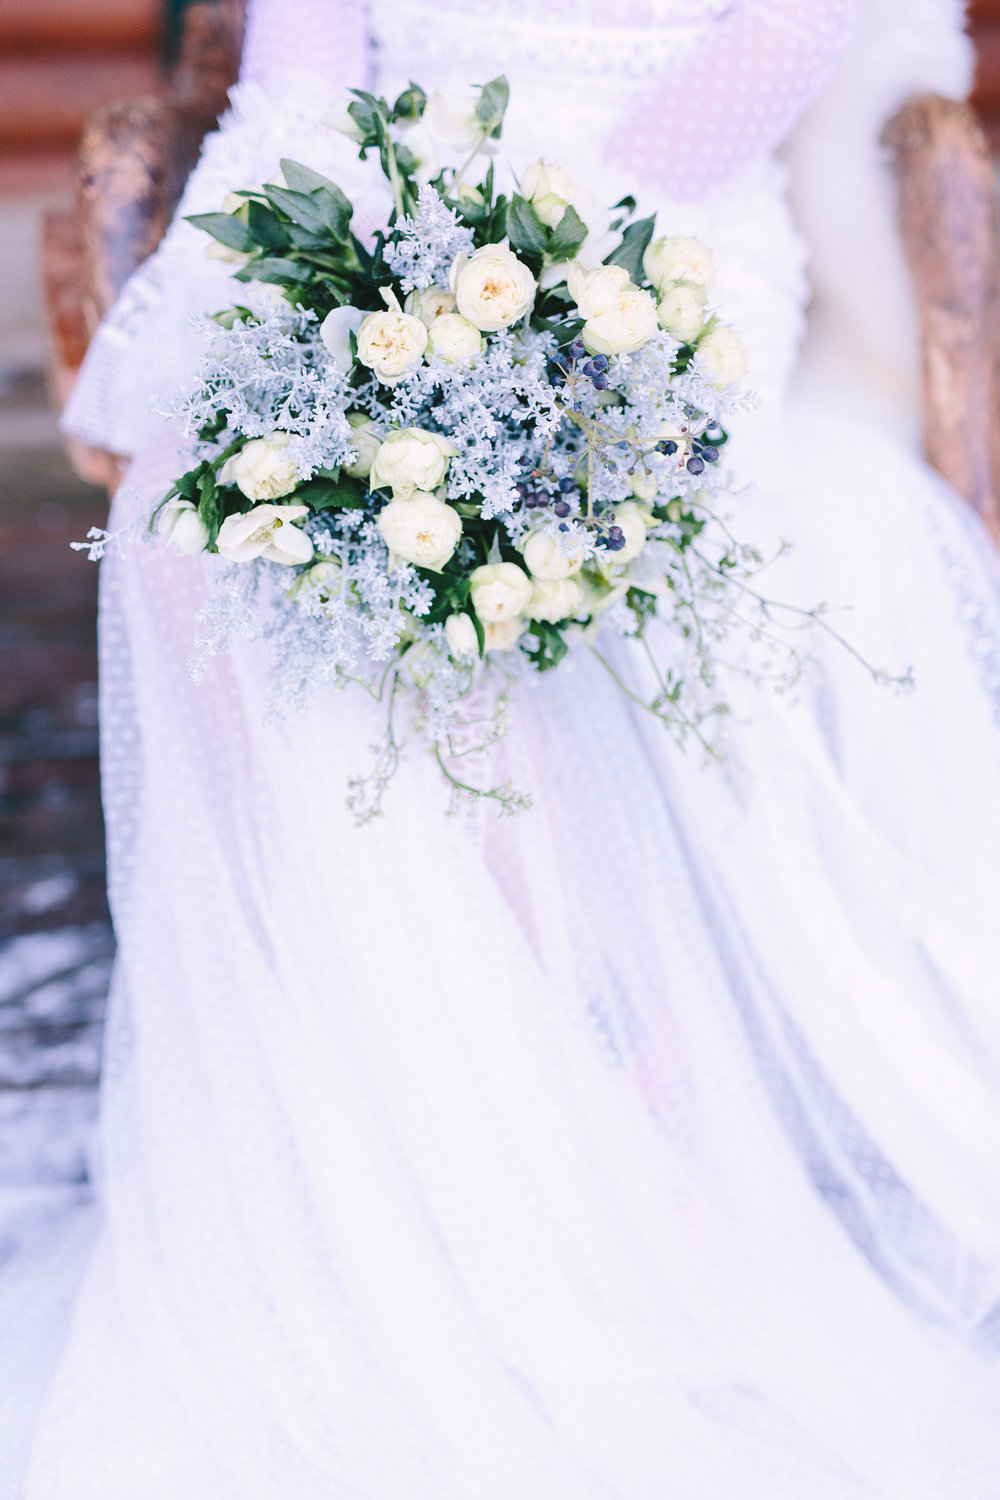 Destination-winter-wedding-greece-wedding-planning-snow-white-feathers-luxury-bouquet-bride-dress-lace-fairytale